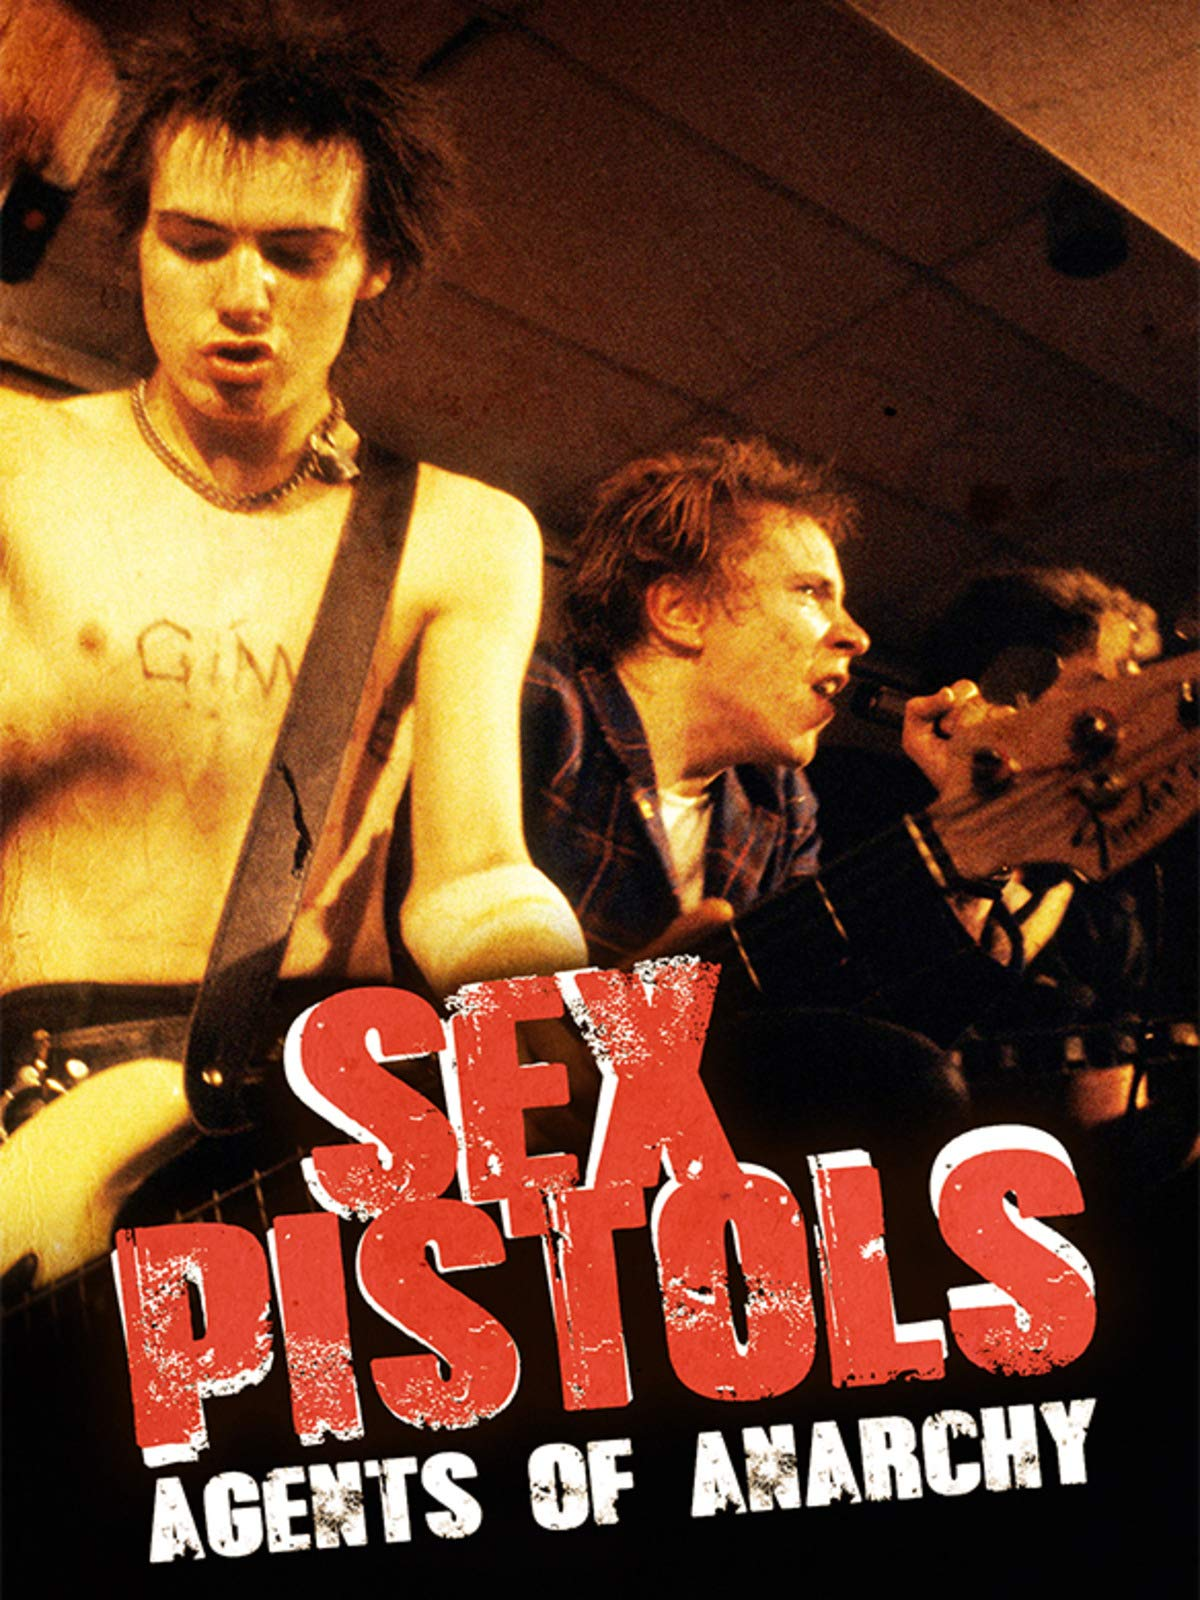 Video biography on the sex pistols